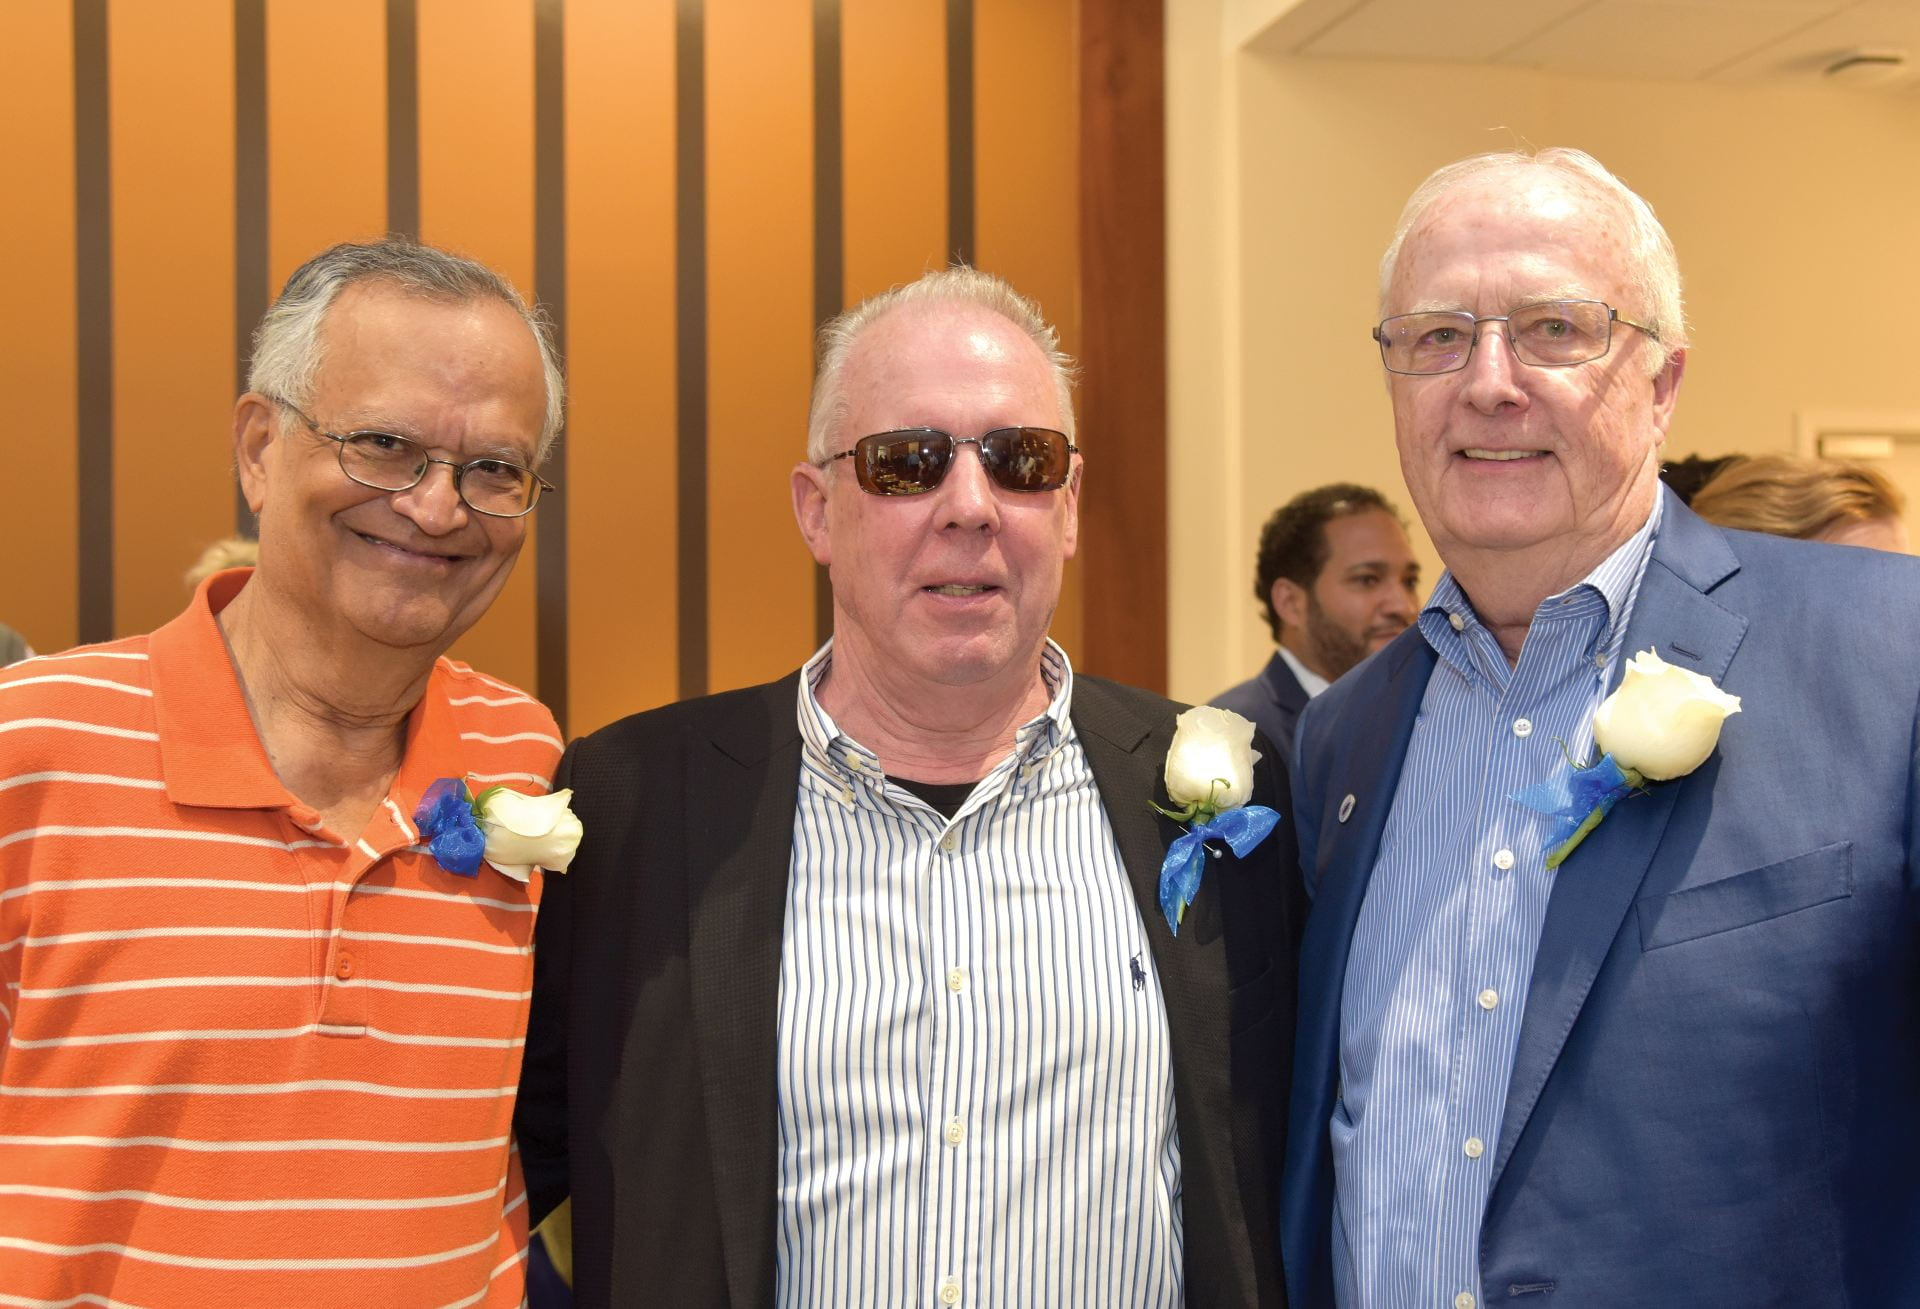 Economics Professor Bala Batavia, Marketing Associate Professor Roger Baran and Accountancy Associate Professor John Ahern were among the longtime faculty members honored.